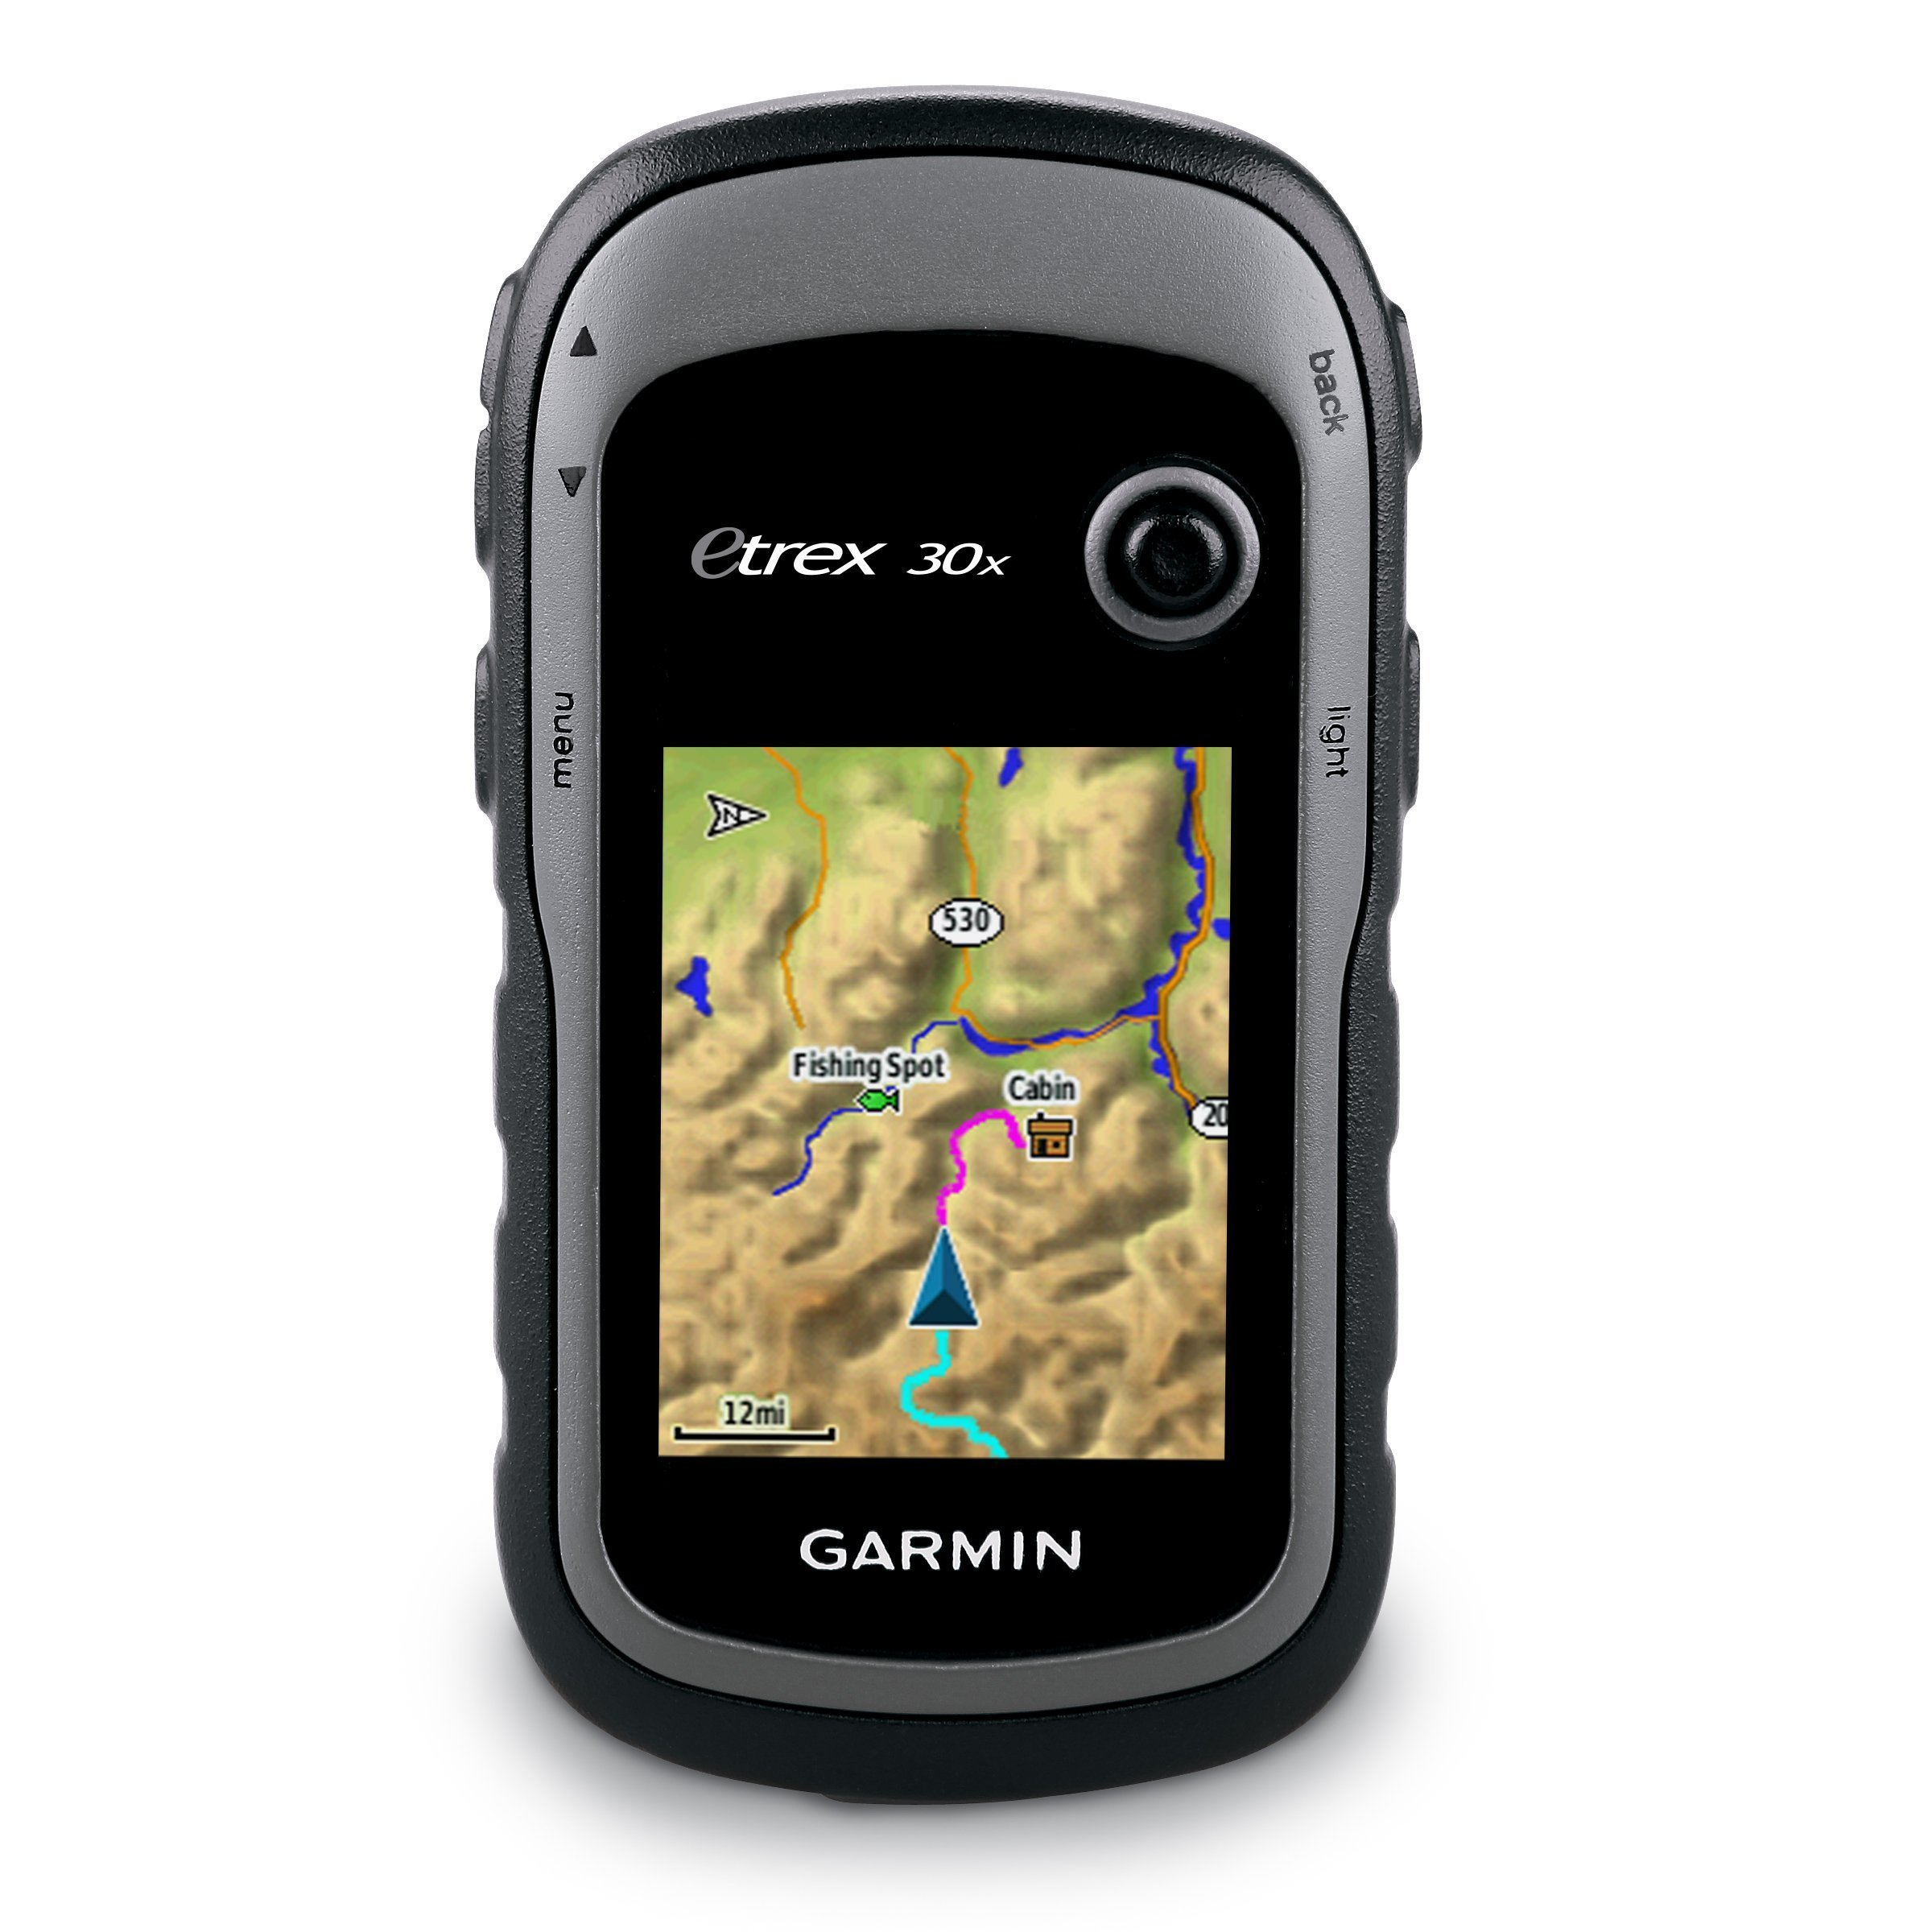 Garmin eTrex 30x 010-01508-10 Handheld Navigator (Certified Refurbished)